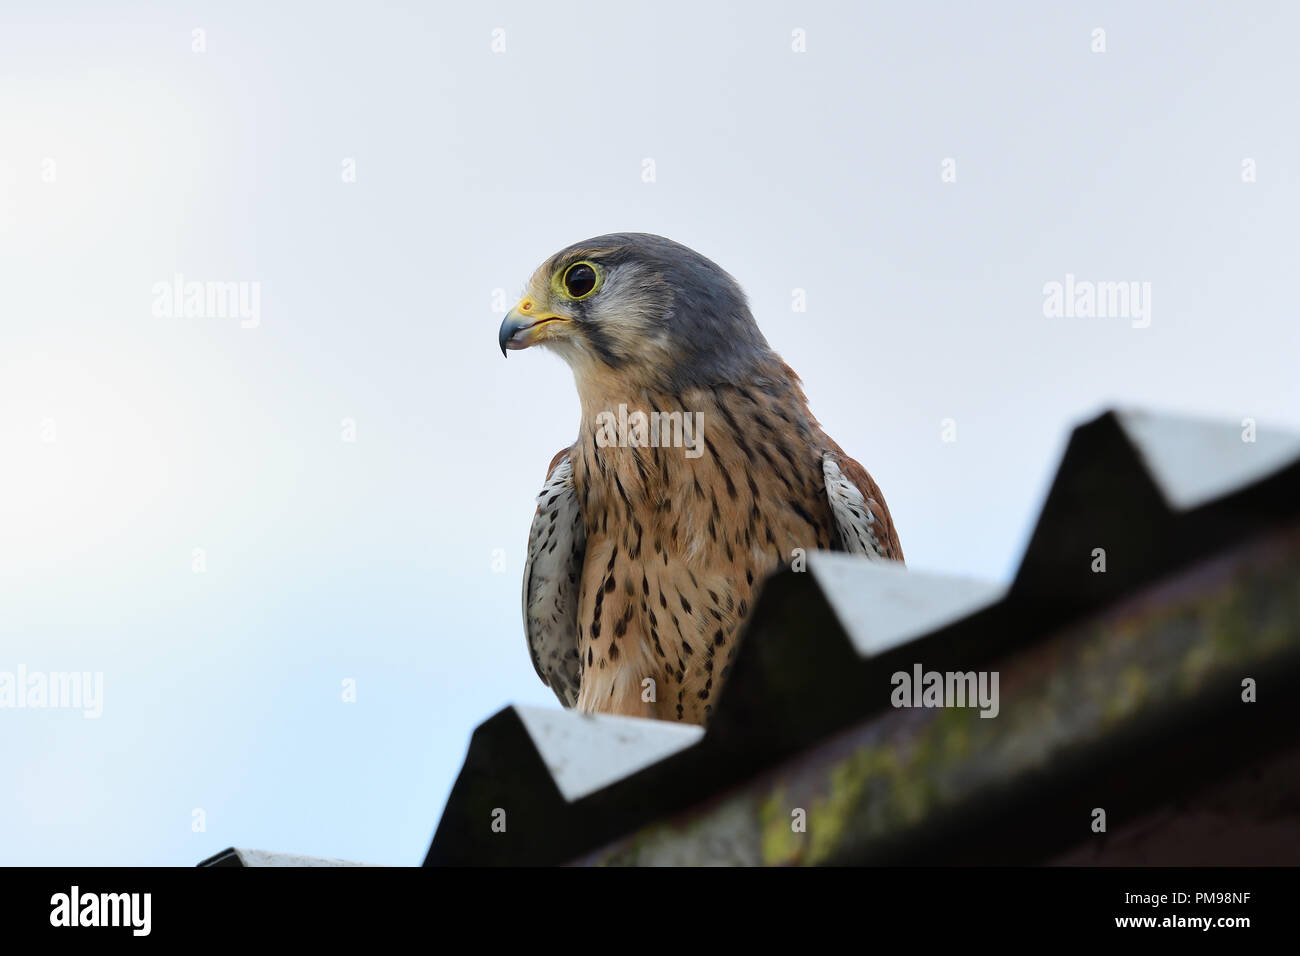 Portrait of a common kestrel (falco tinnunculus) perching on a shed roof - Stock Image